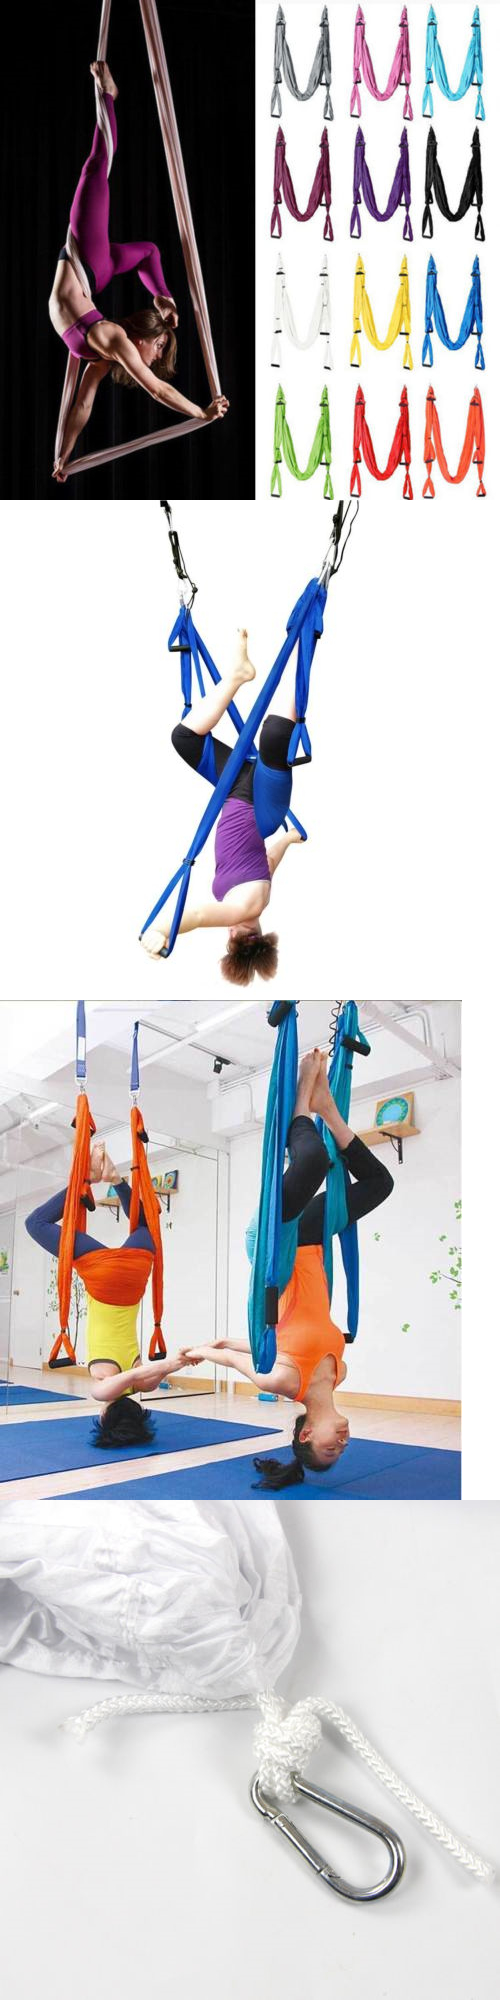 Medium image of yoga props 179809  aerial yoga trapeze swing sling hammock indoor anti gravity inversion prop tools